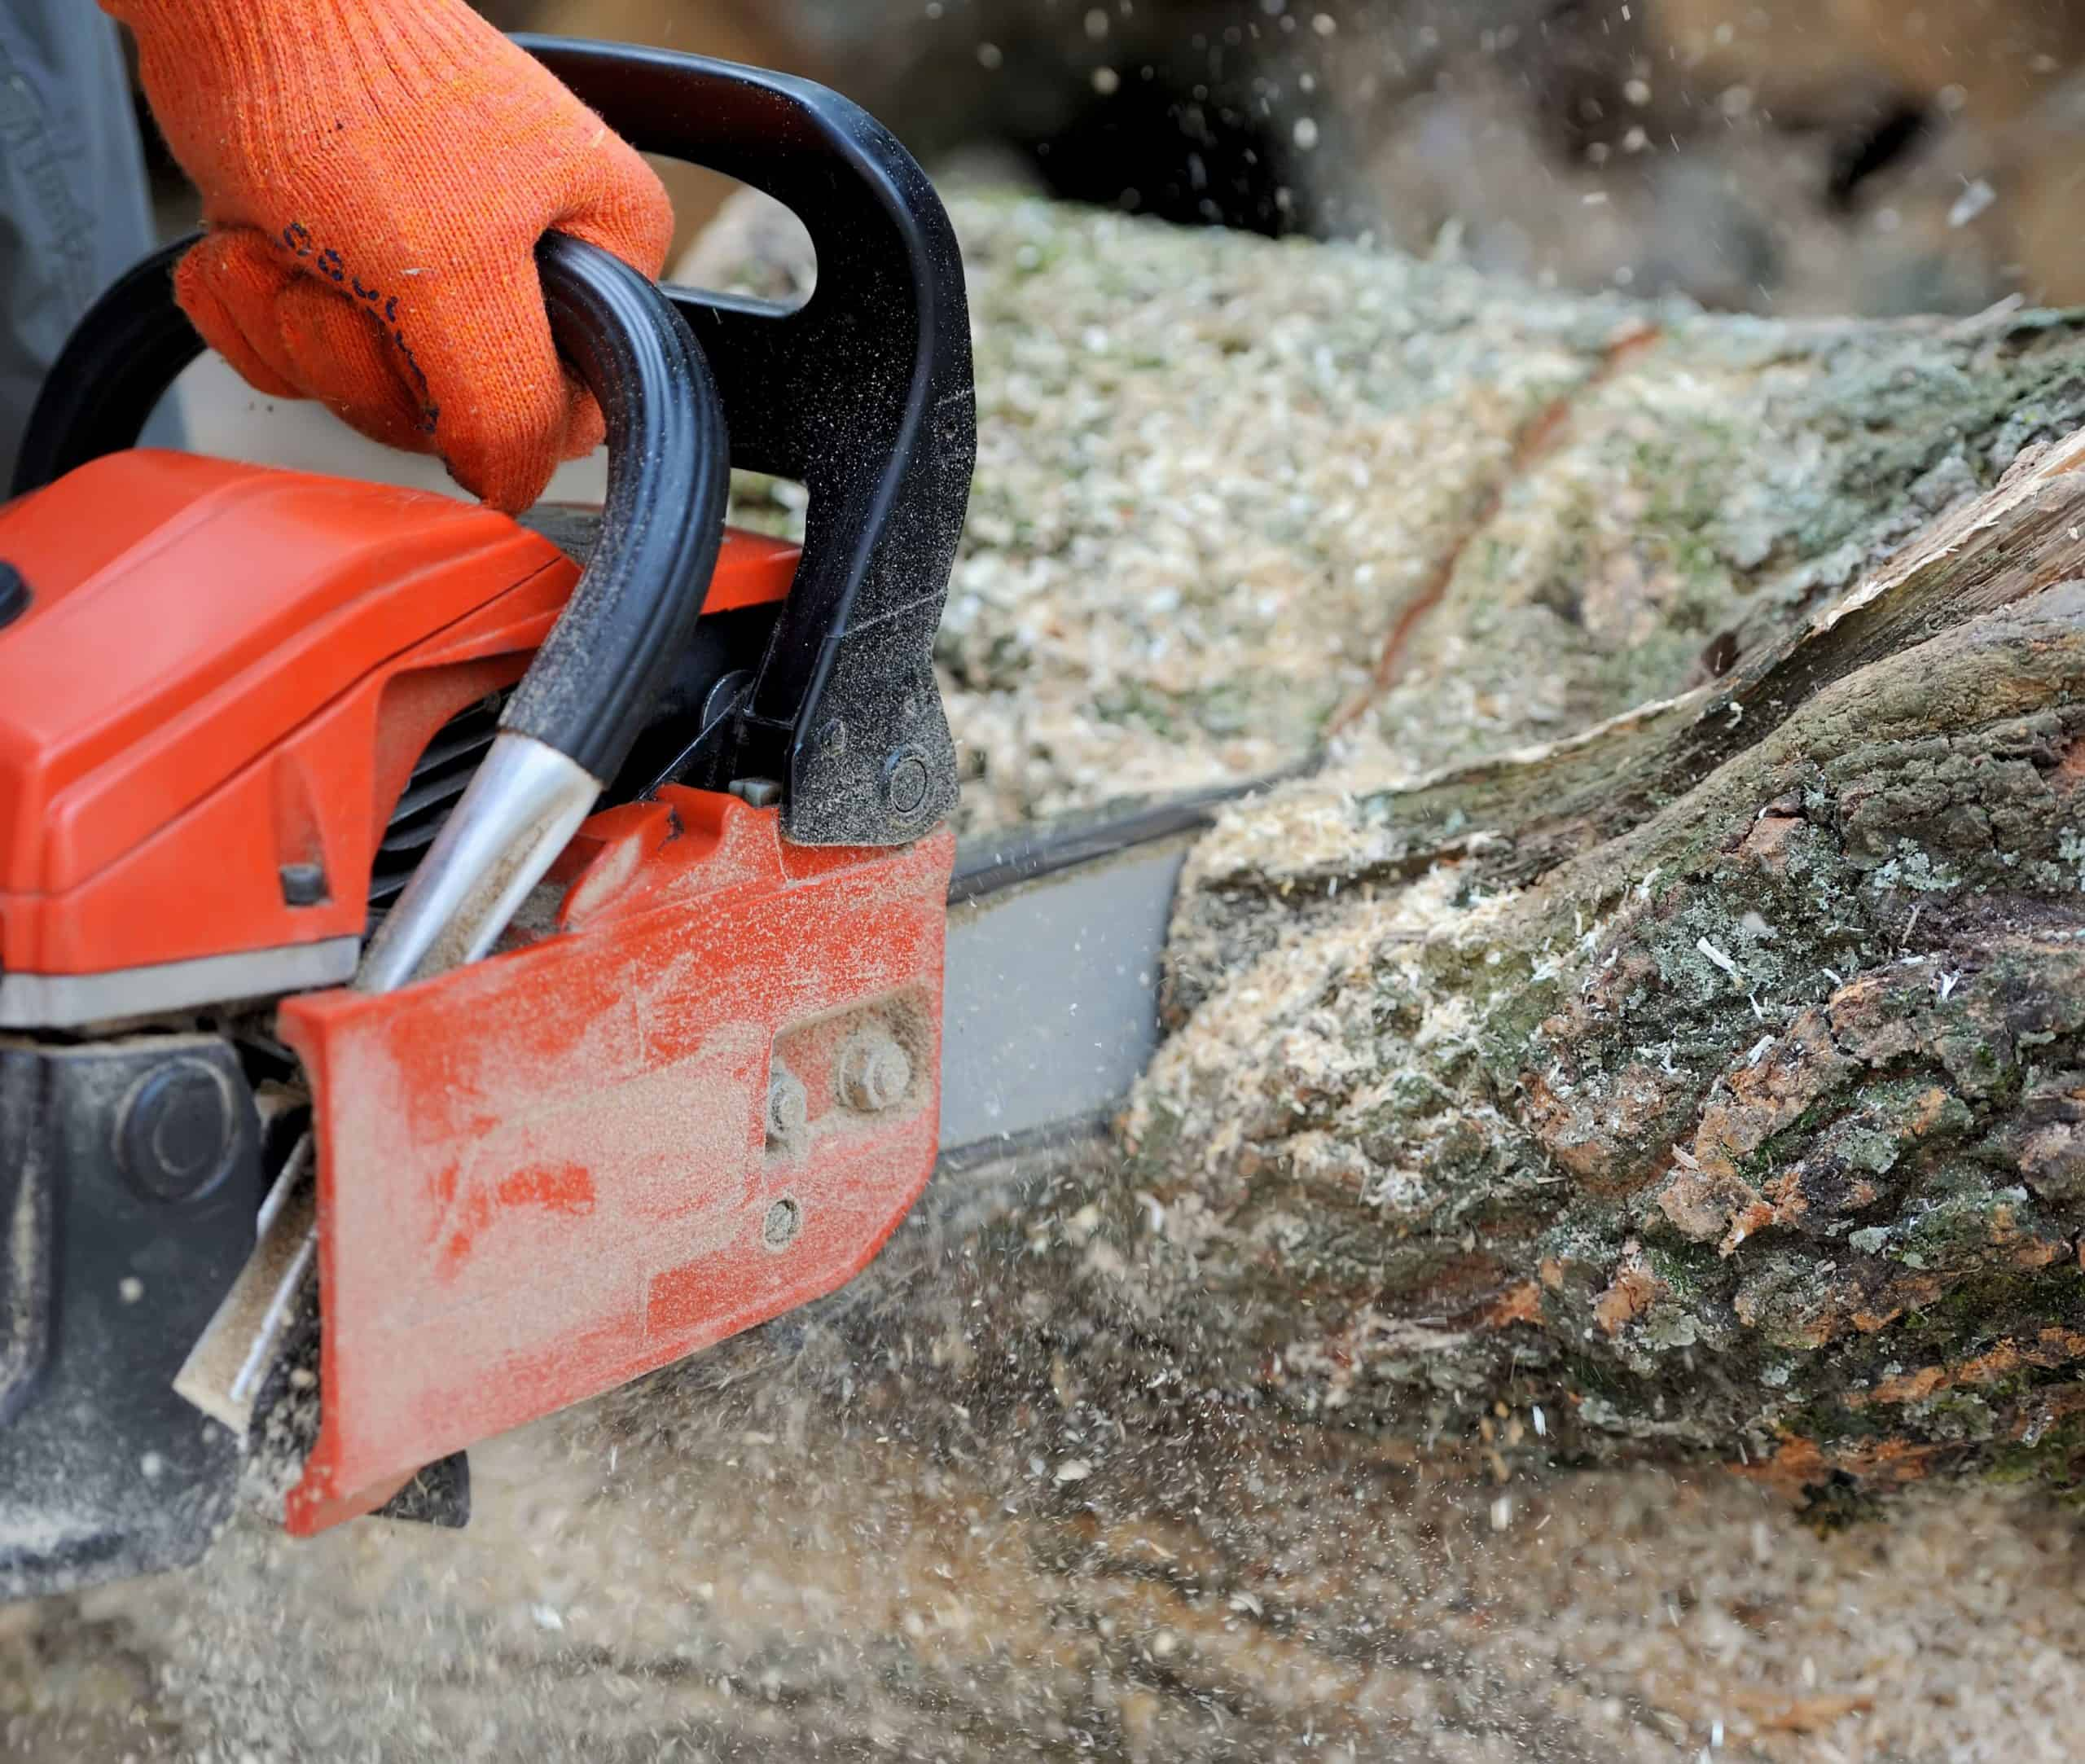 Cutting wood with a chainsaw using working gloves